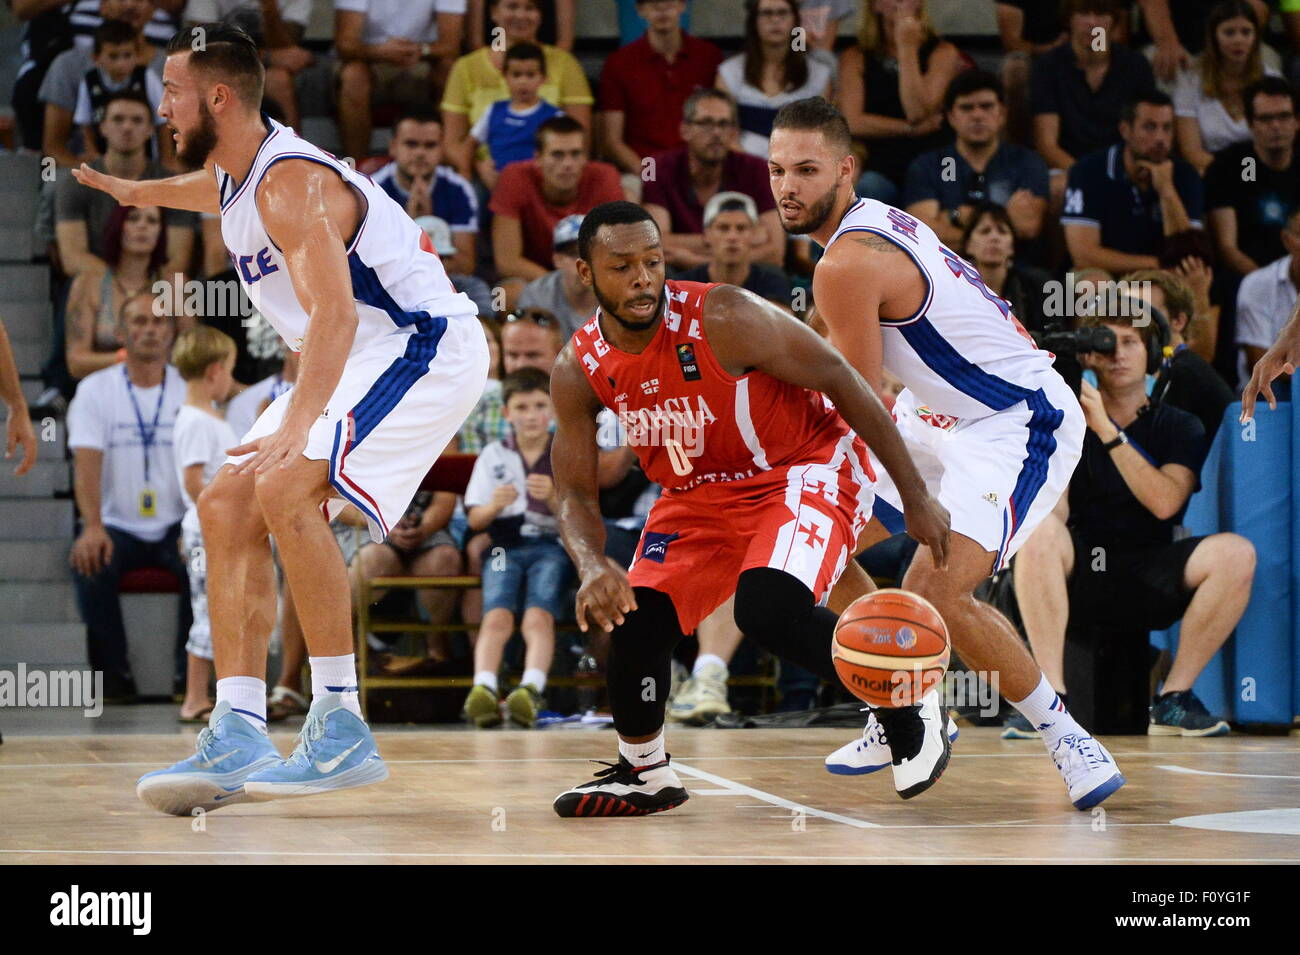 Evan FOURNIER/Jacob PULLEN - 21.08.2015 - France/Georgie - Match amical.Photo : Nolwenn Le Gouic/Icon Sport - Stock Image